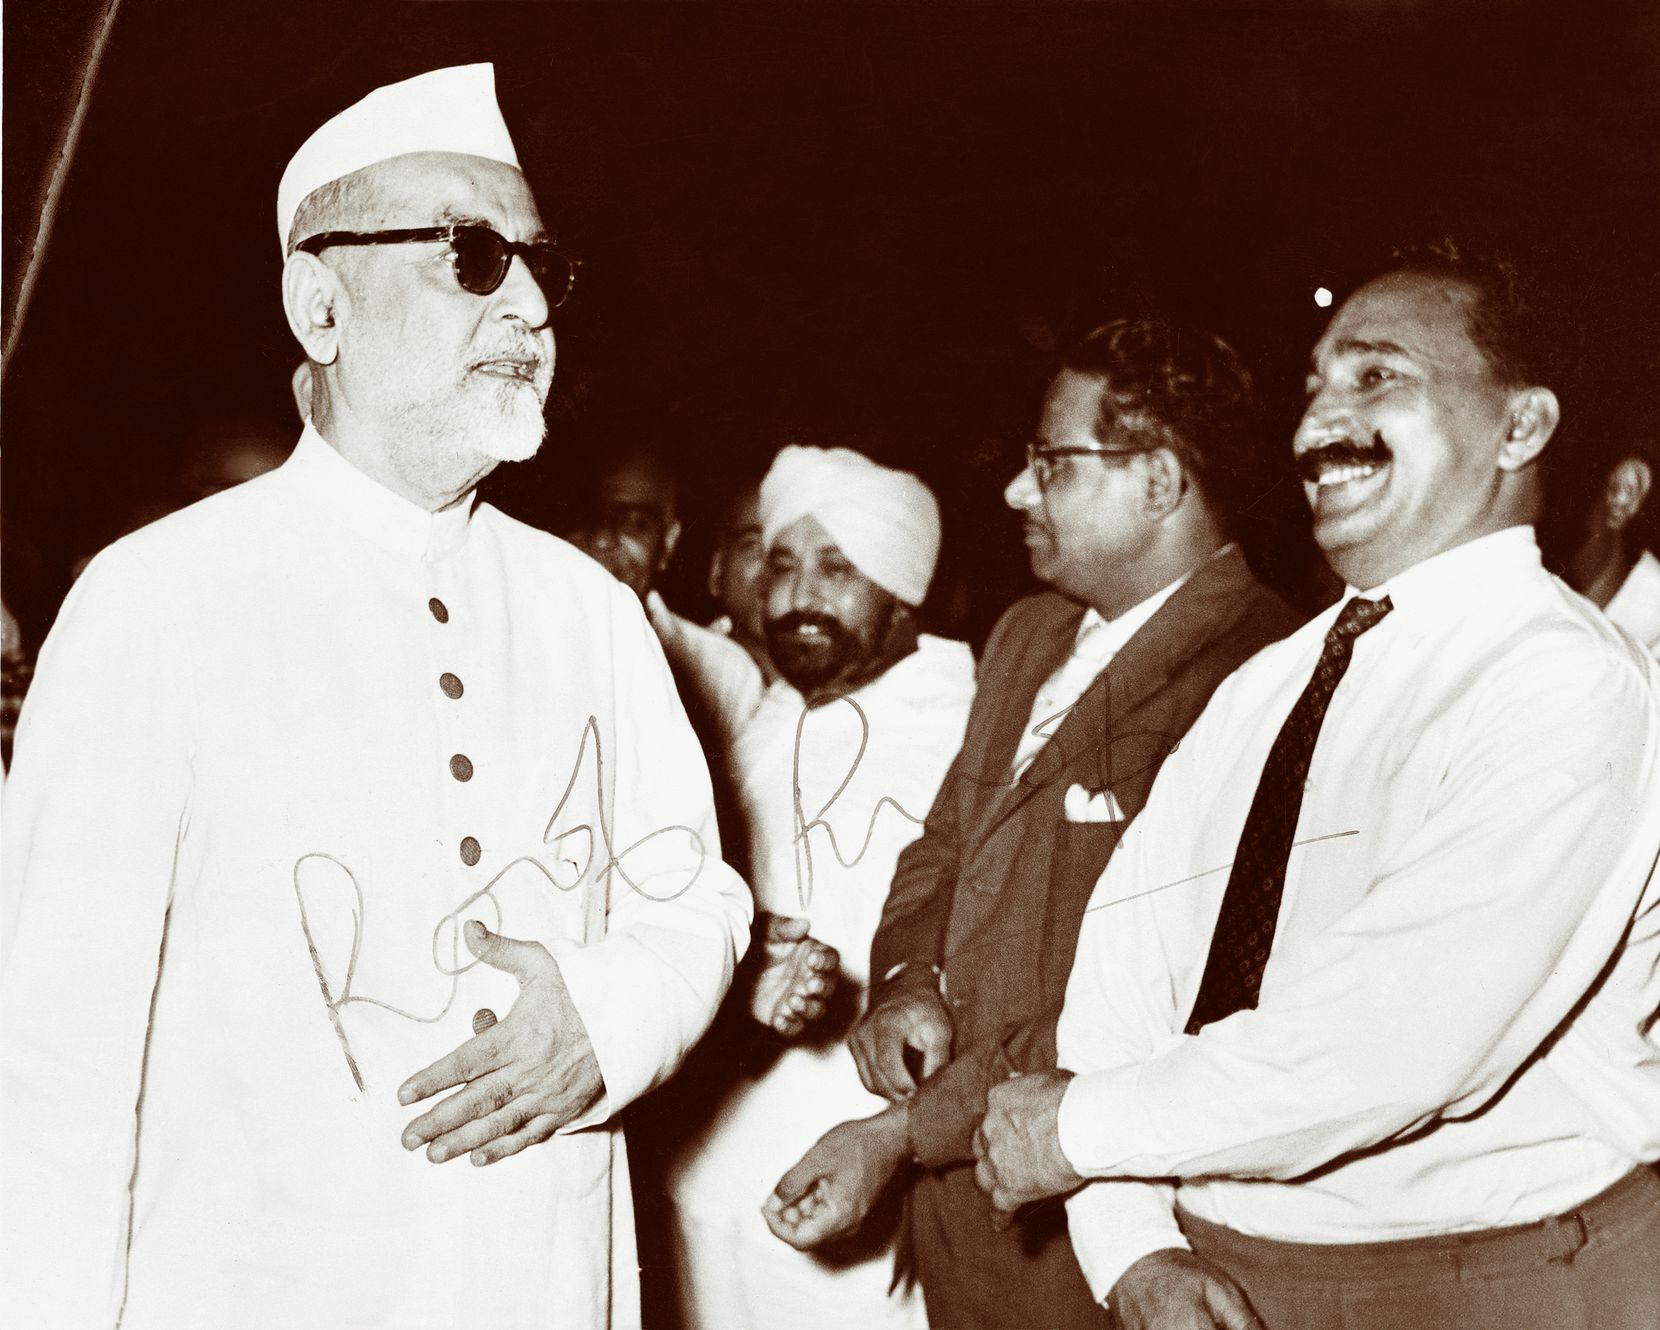 Kundan Lal Gujral (the inventor of butter chicken, right) with Jawahrlal Nehru